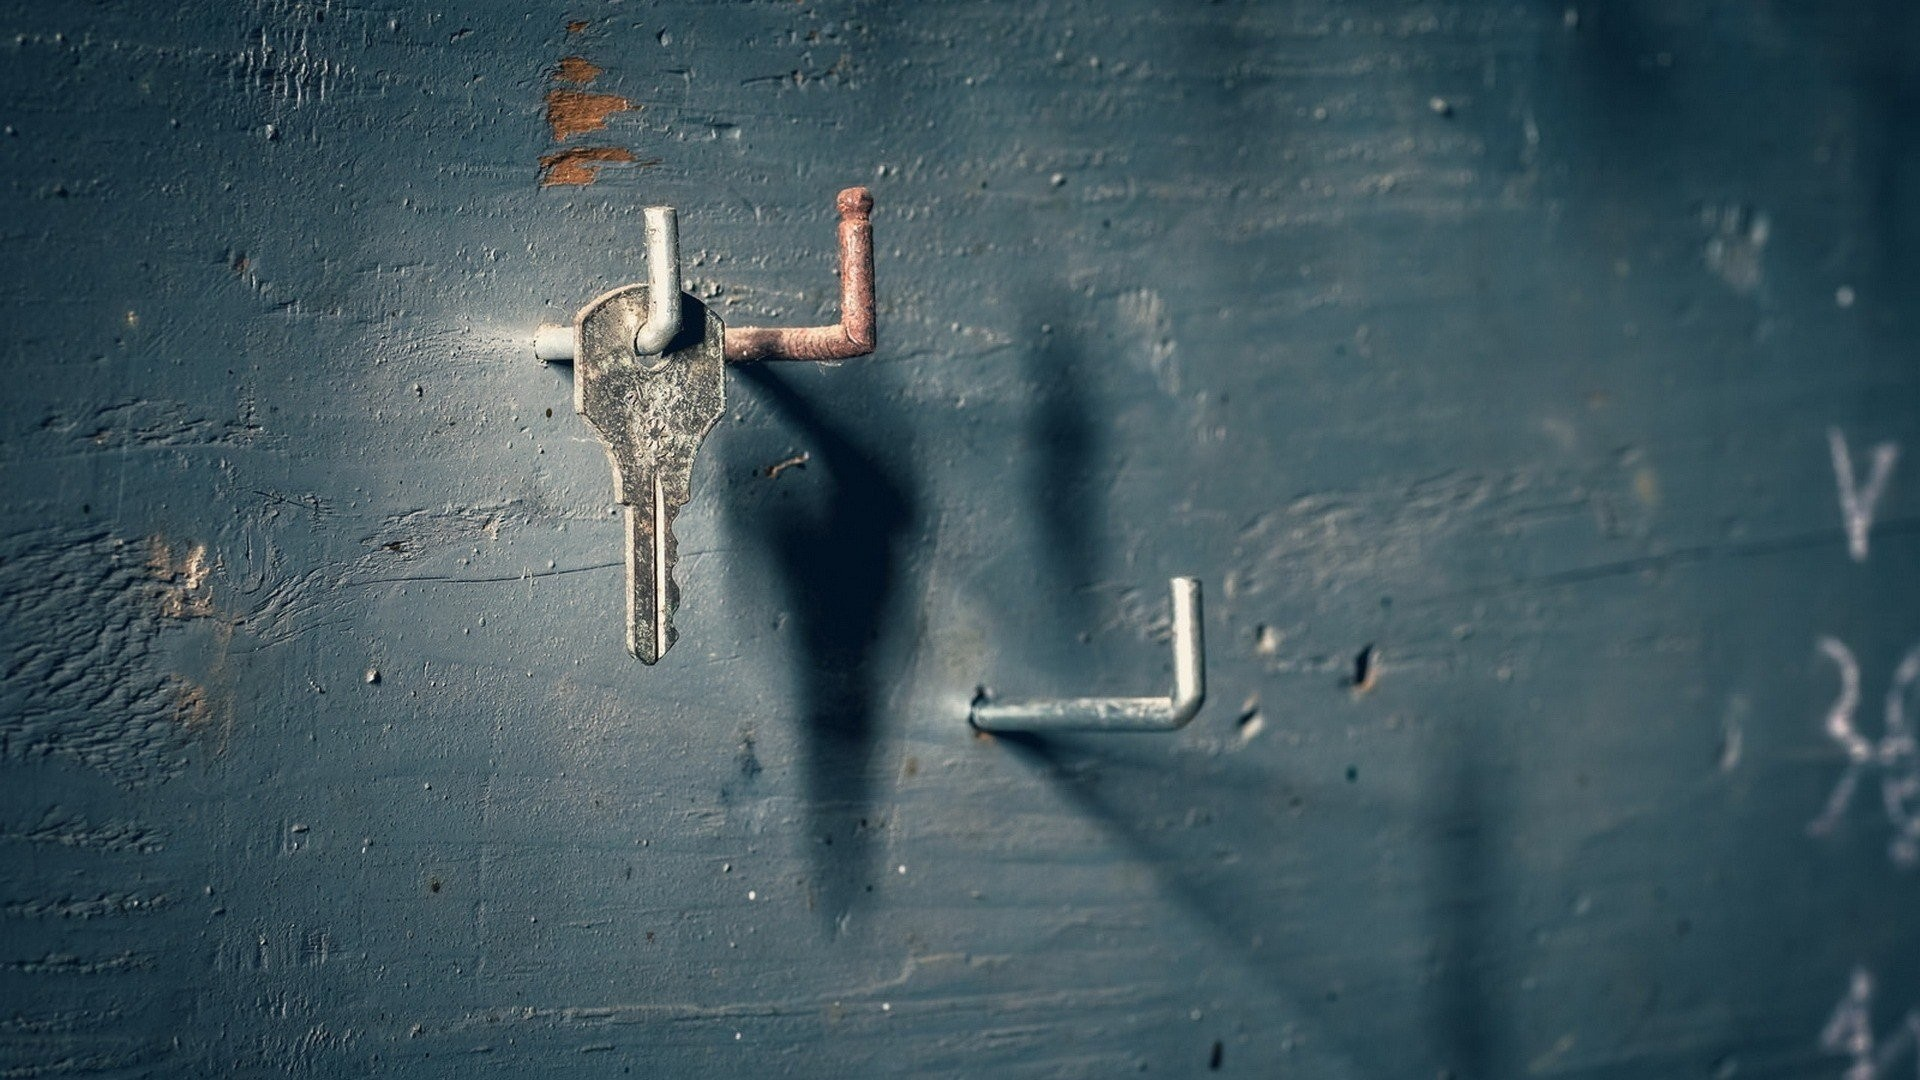 1920x1080 walls, Minimalism, Simple, Wood, Nails, Keys, Shadow, Rust,